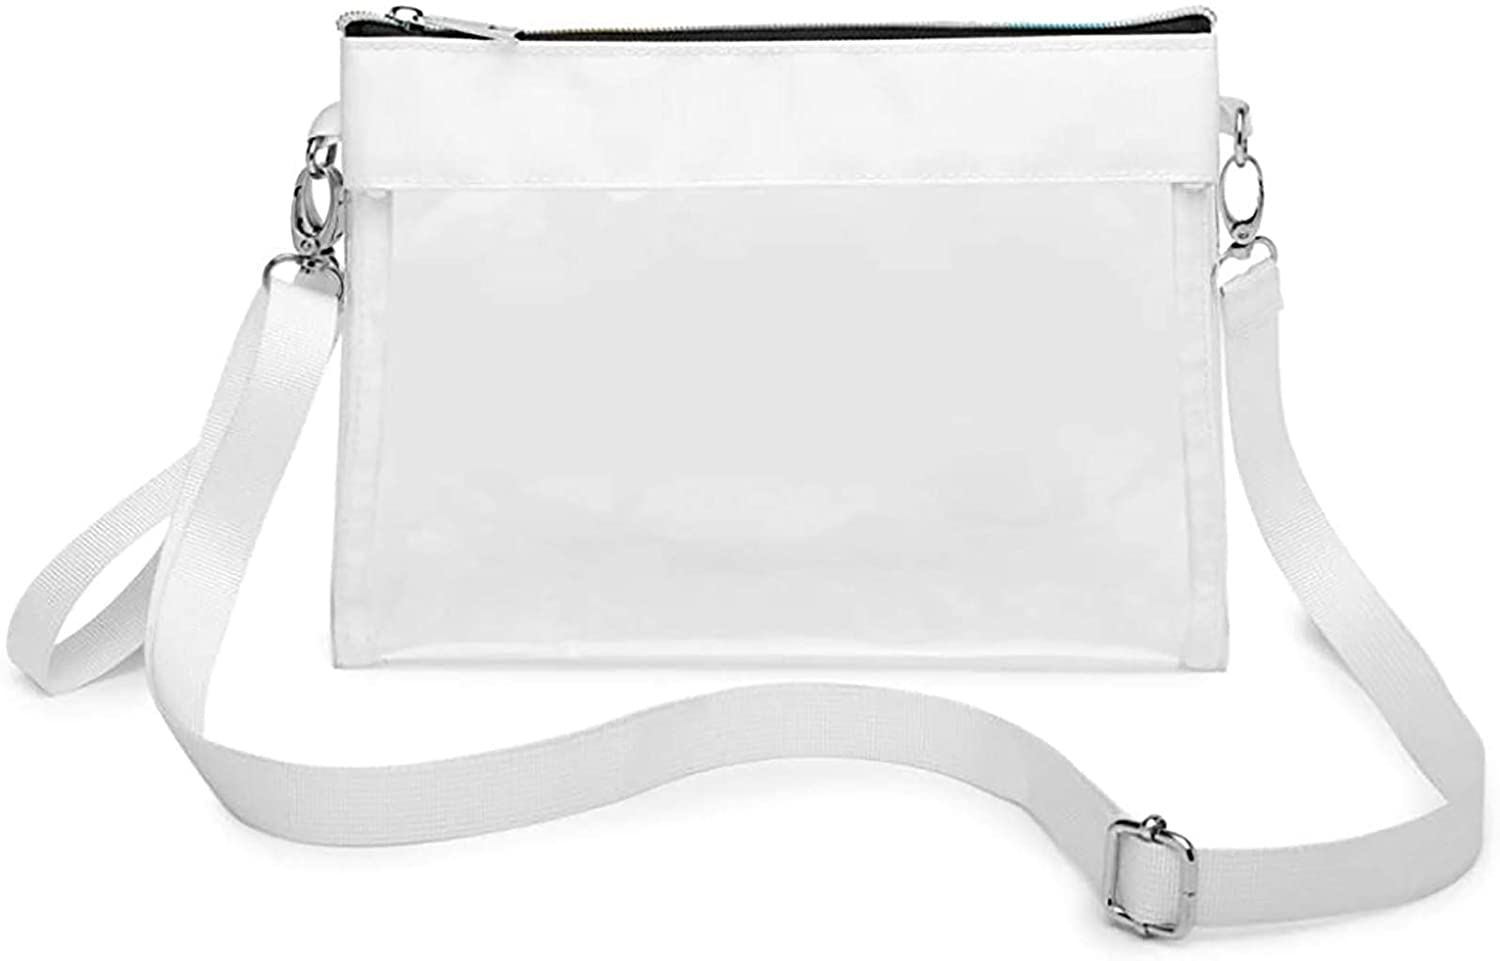 Clear Crossbody Purse NFL Stadium Approved Clear Bag with Shoulder Wrist Strap